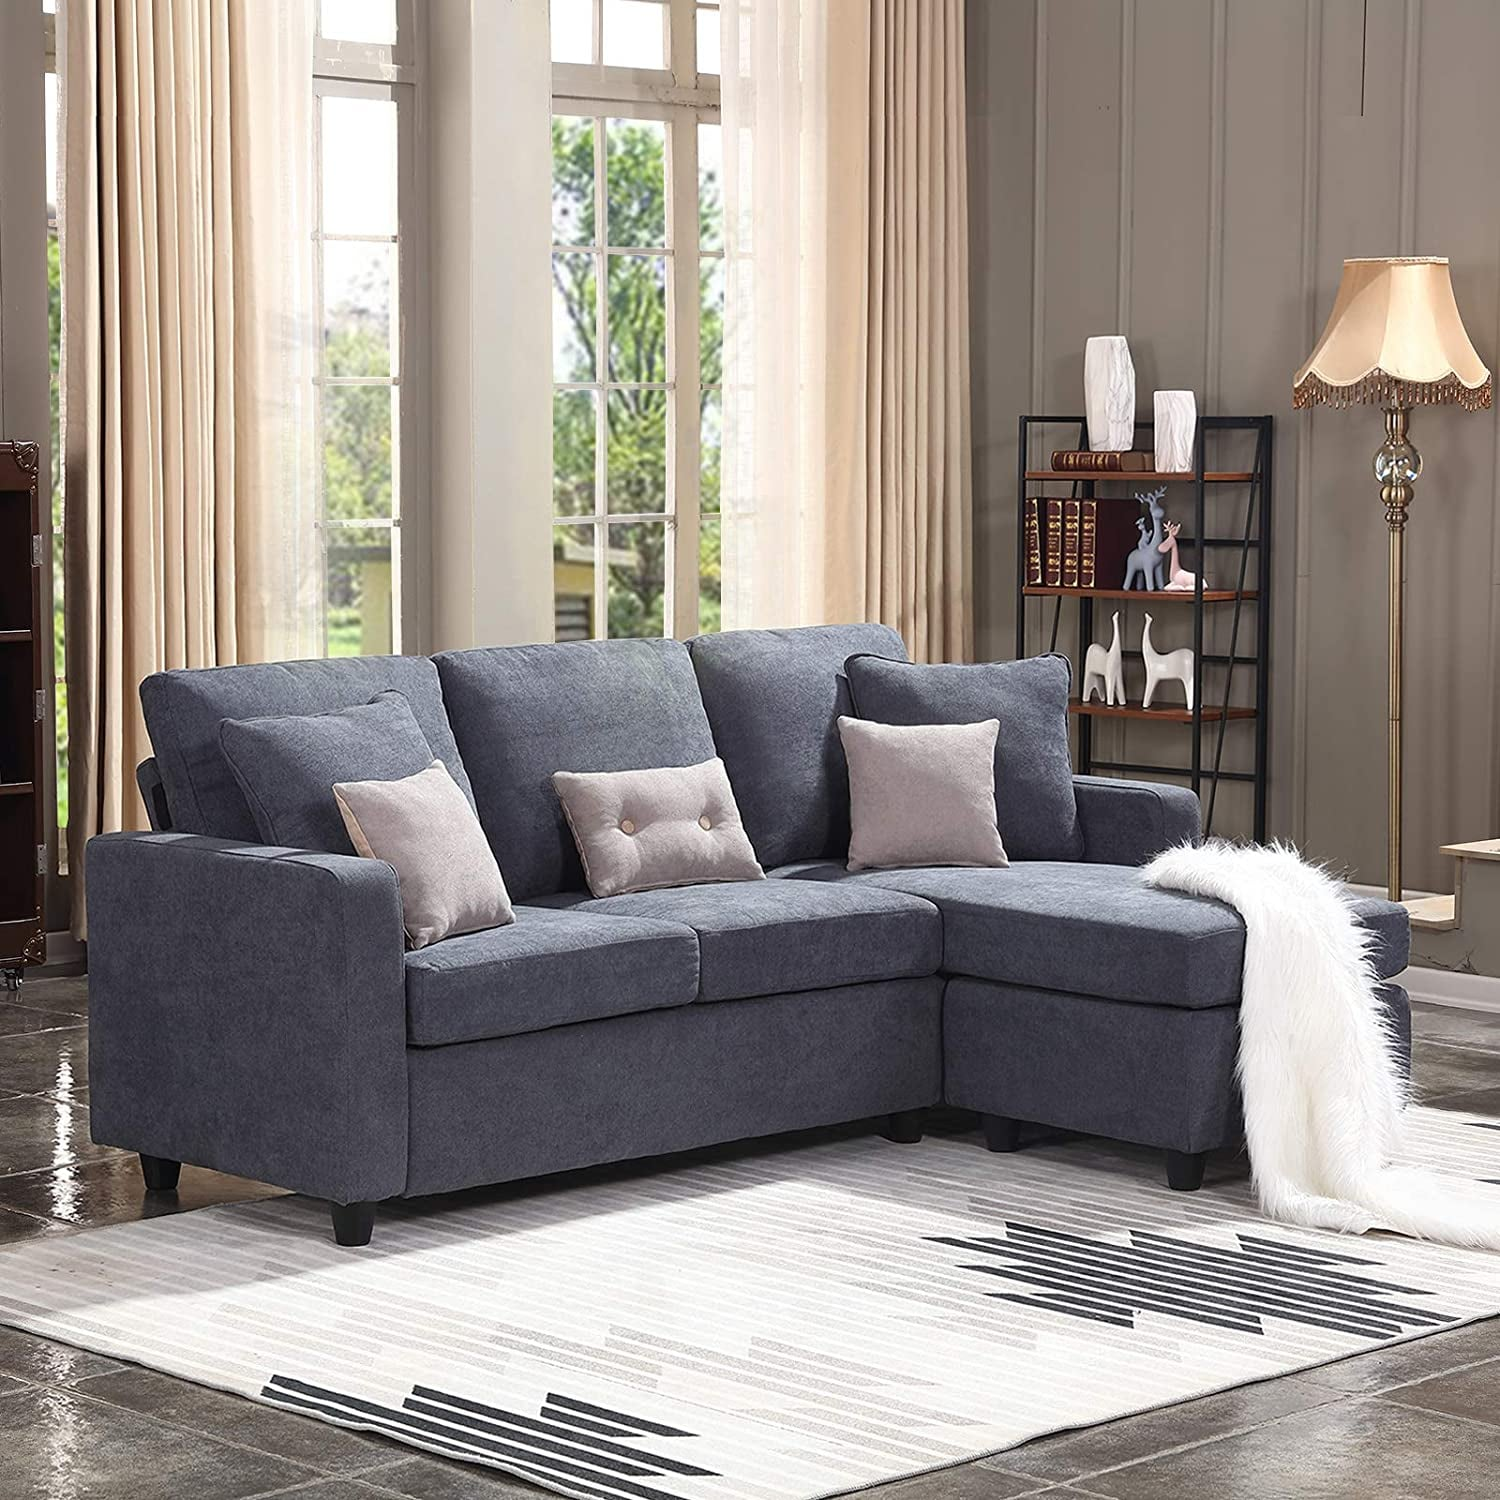 Best Cheap Couches Under $12  12 Guide  POPSUGAR Home